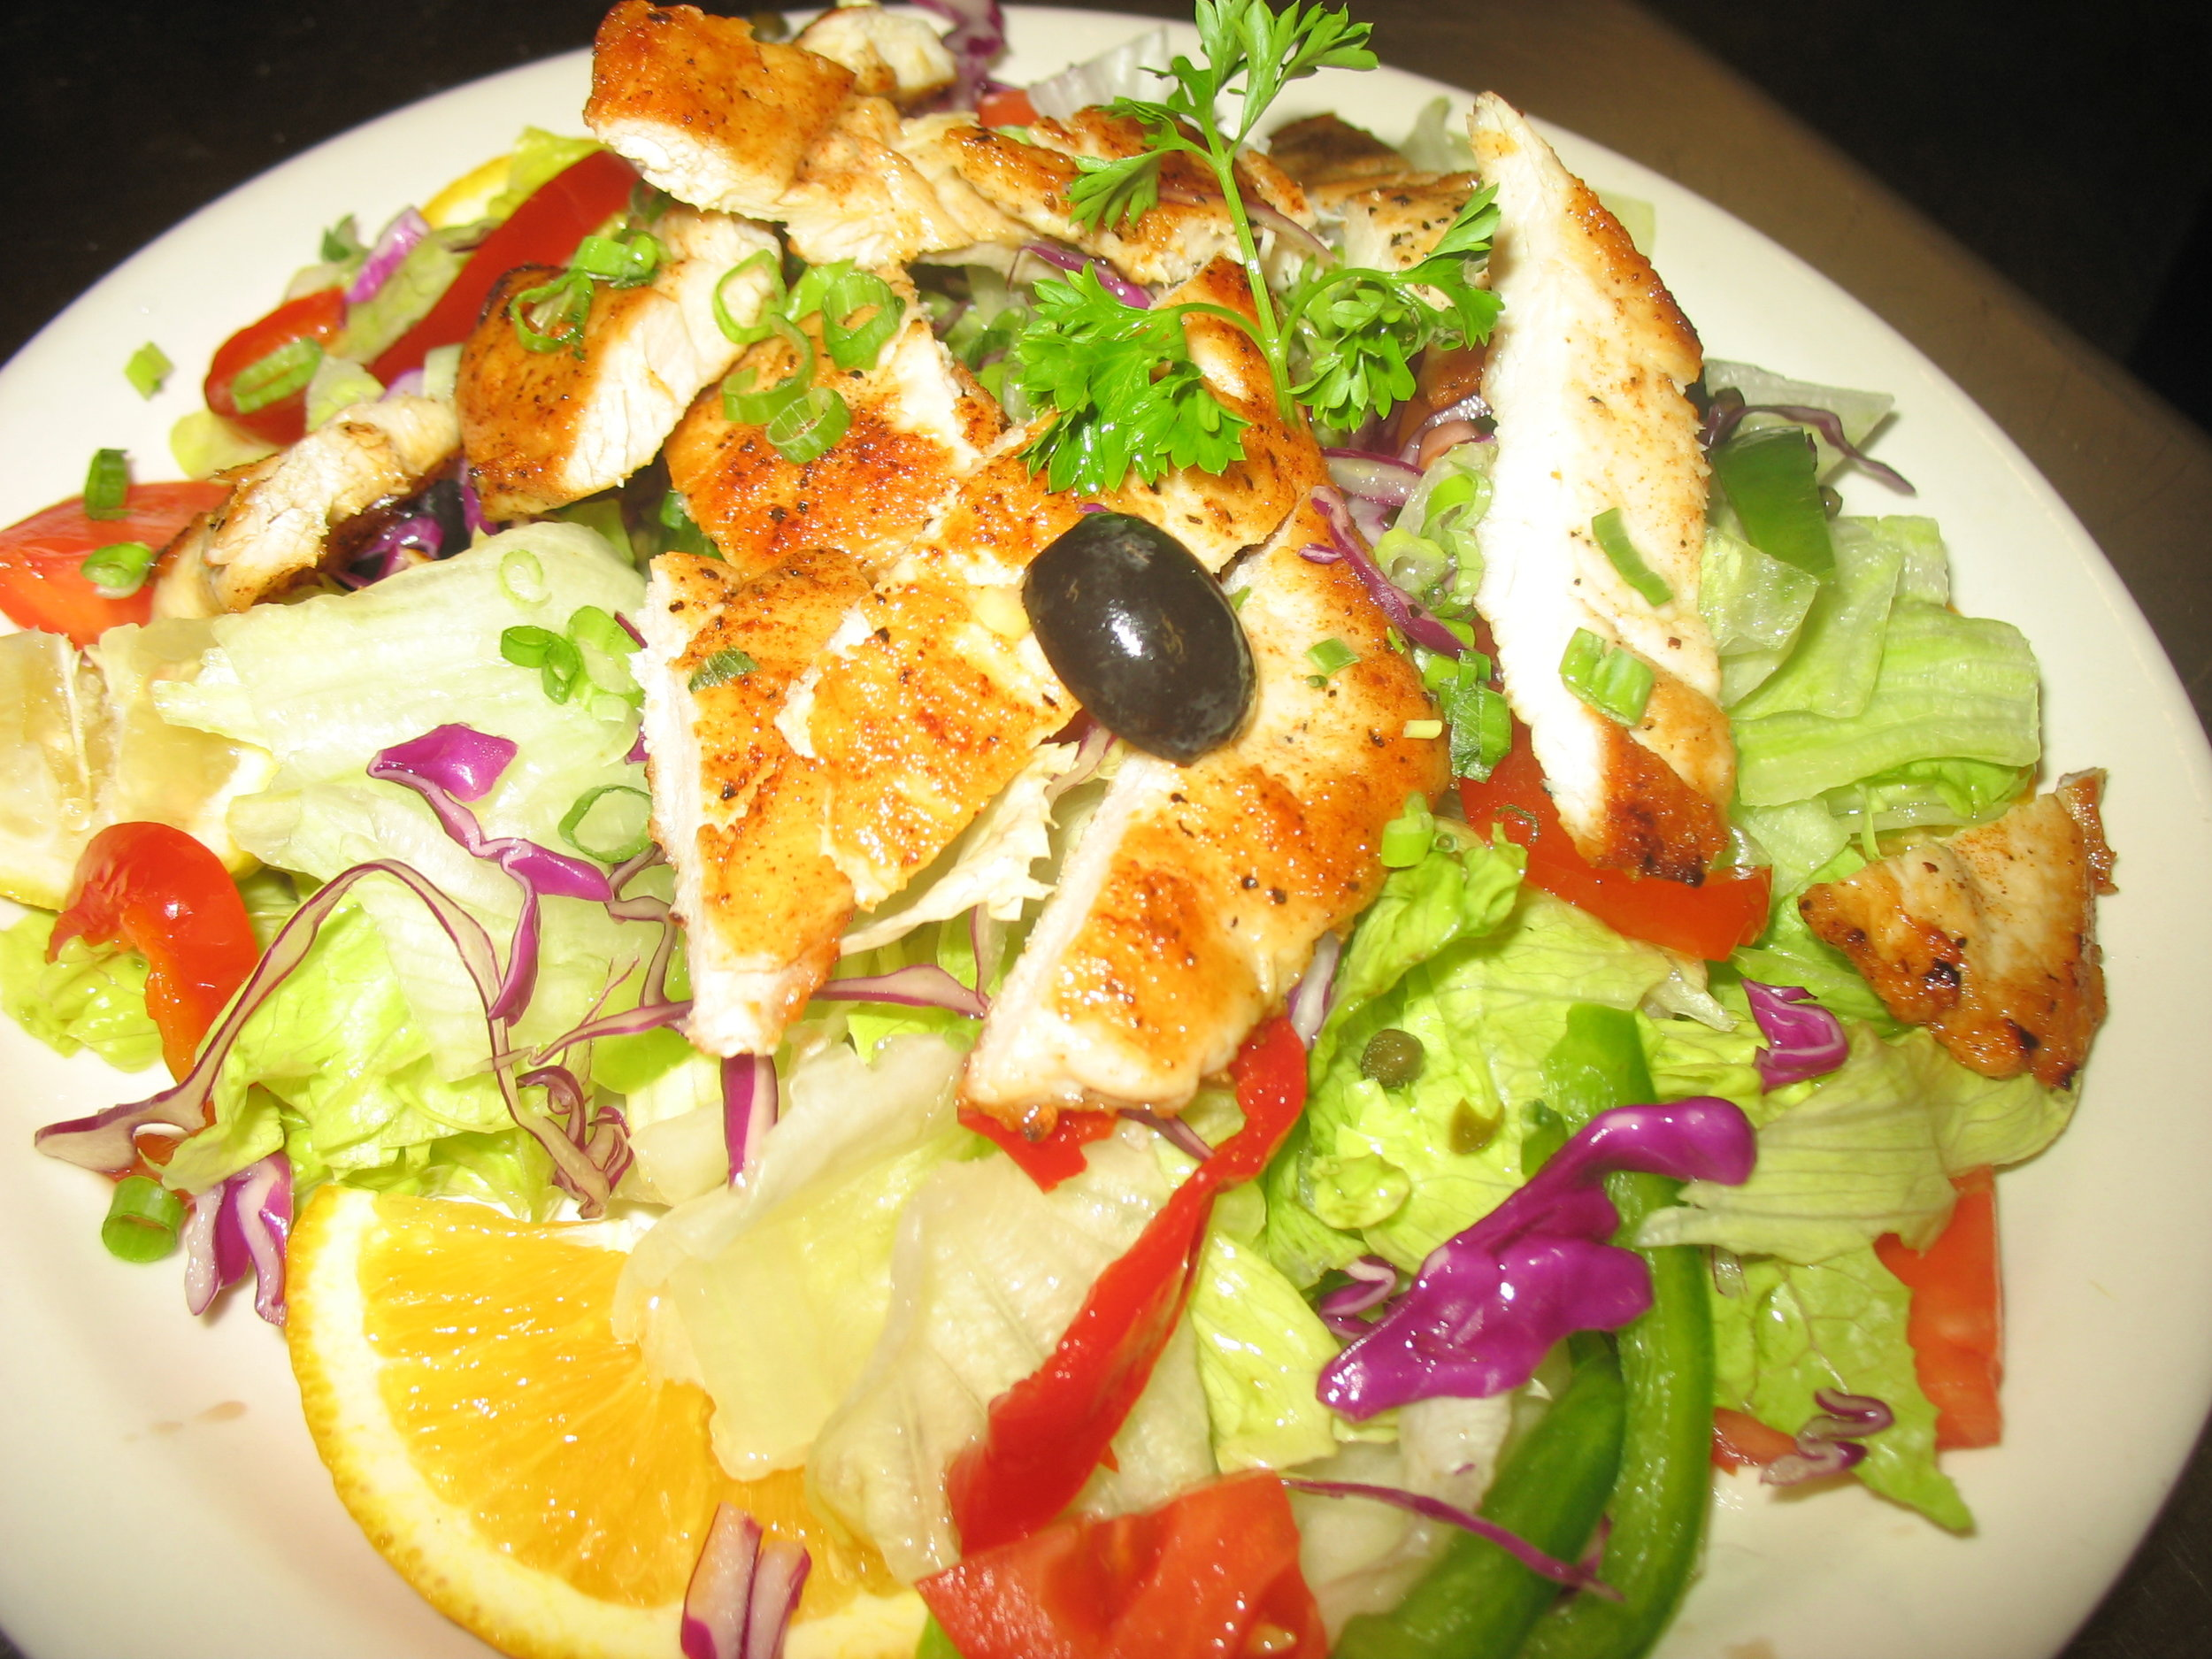 grilled chicken salad.JPG